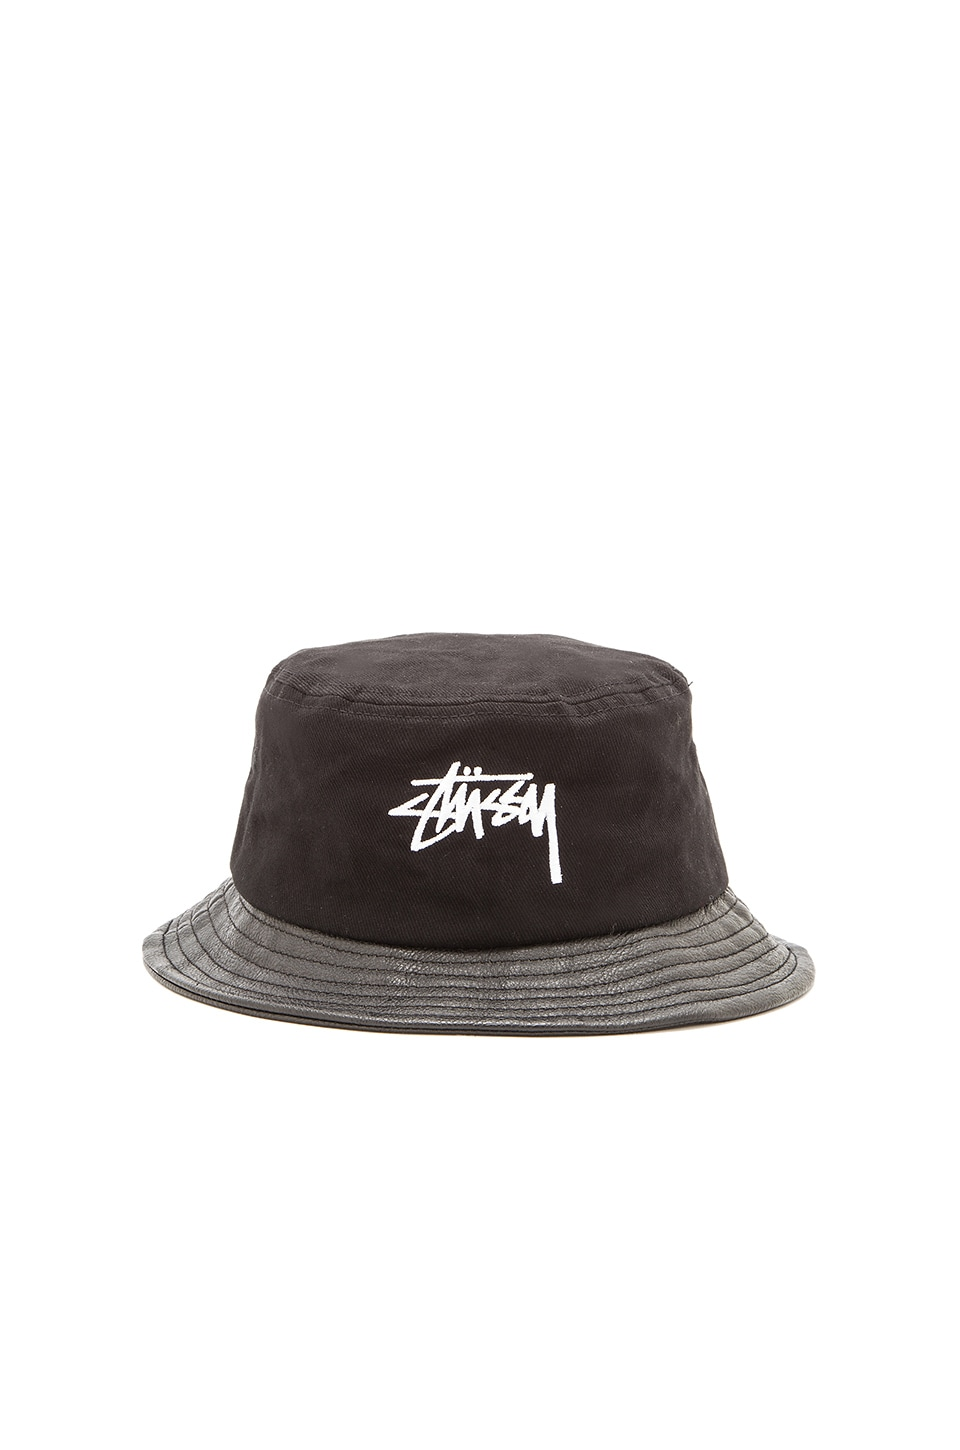 Stussy Stock Leather Brim Bucket Hat in Black  88fb32e712